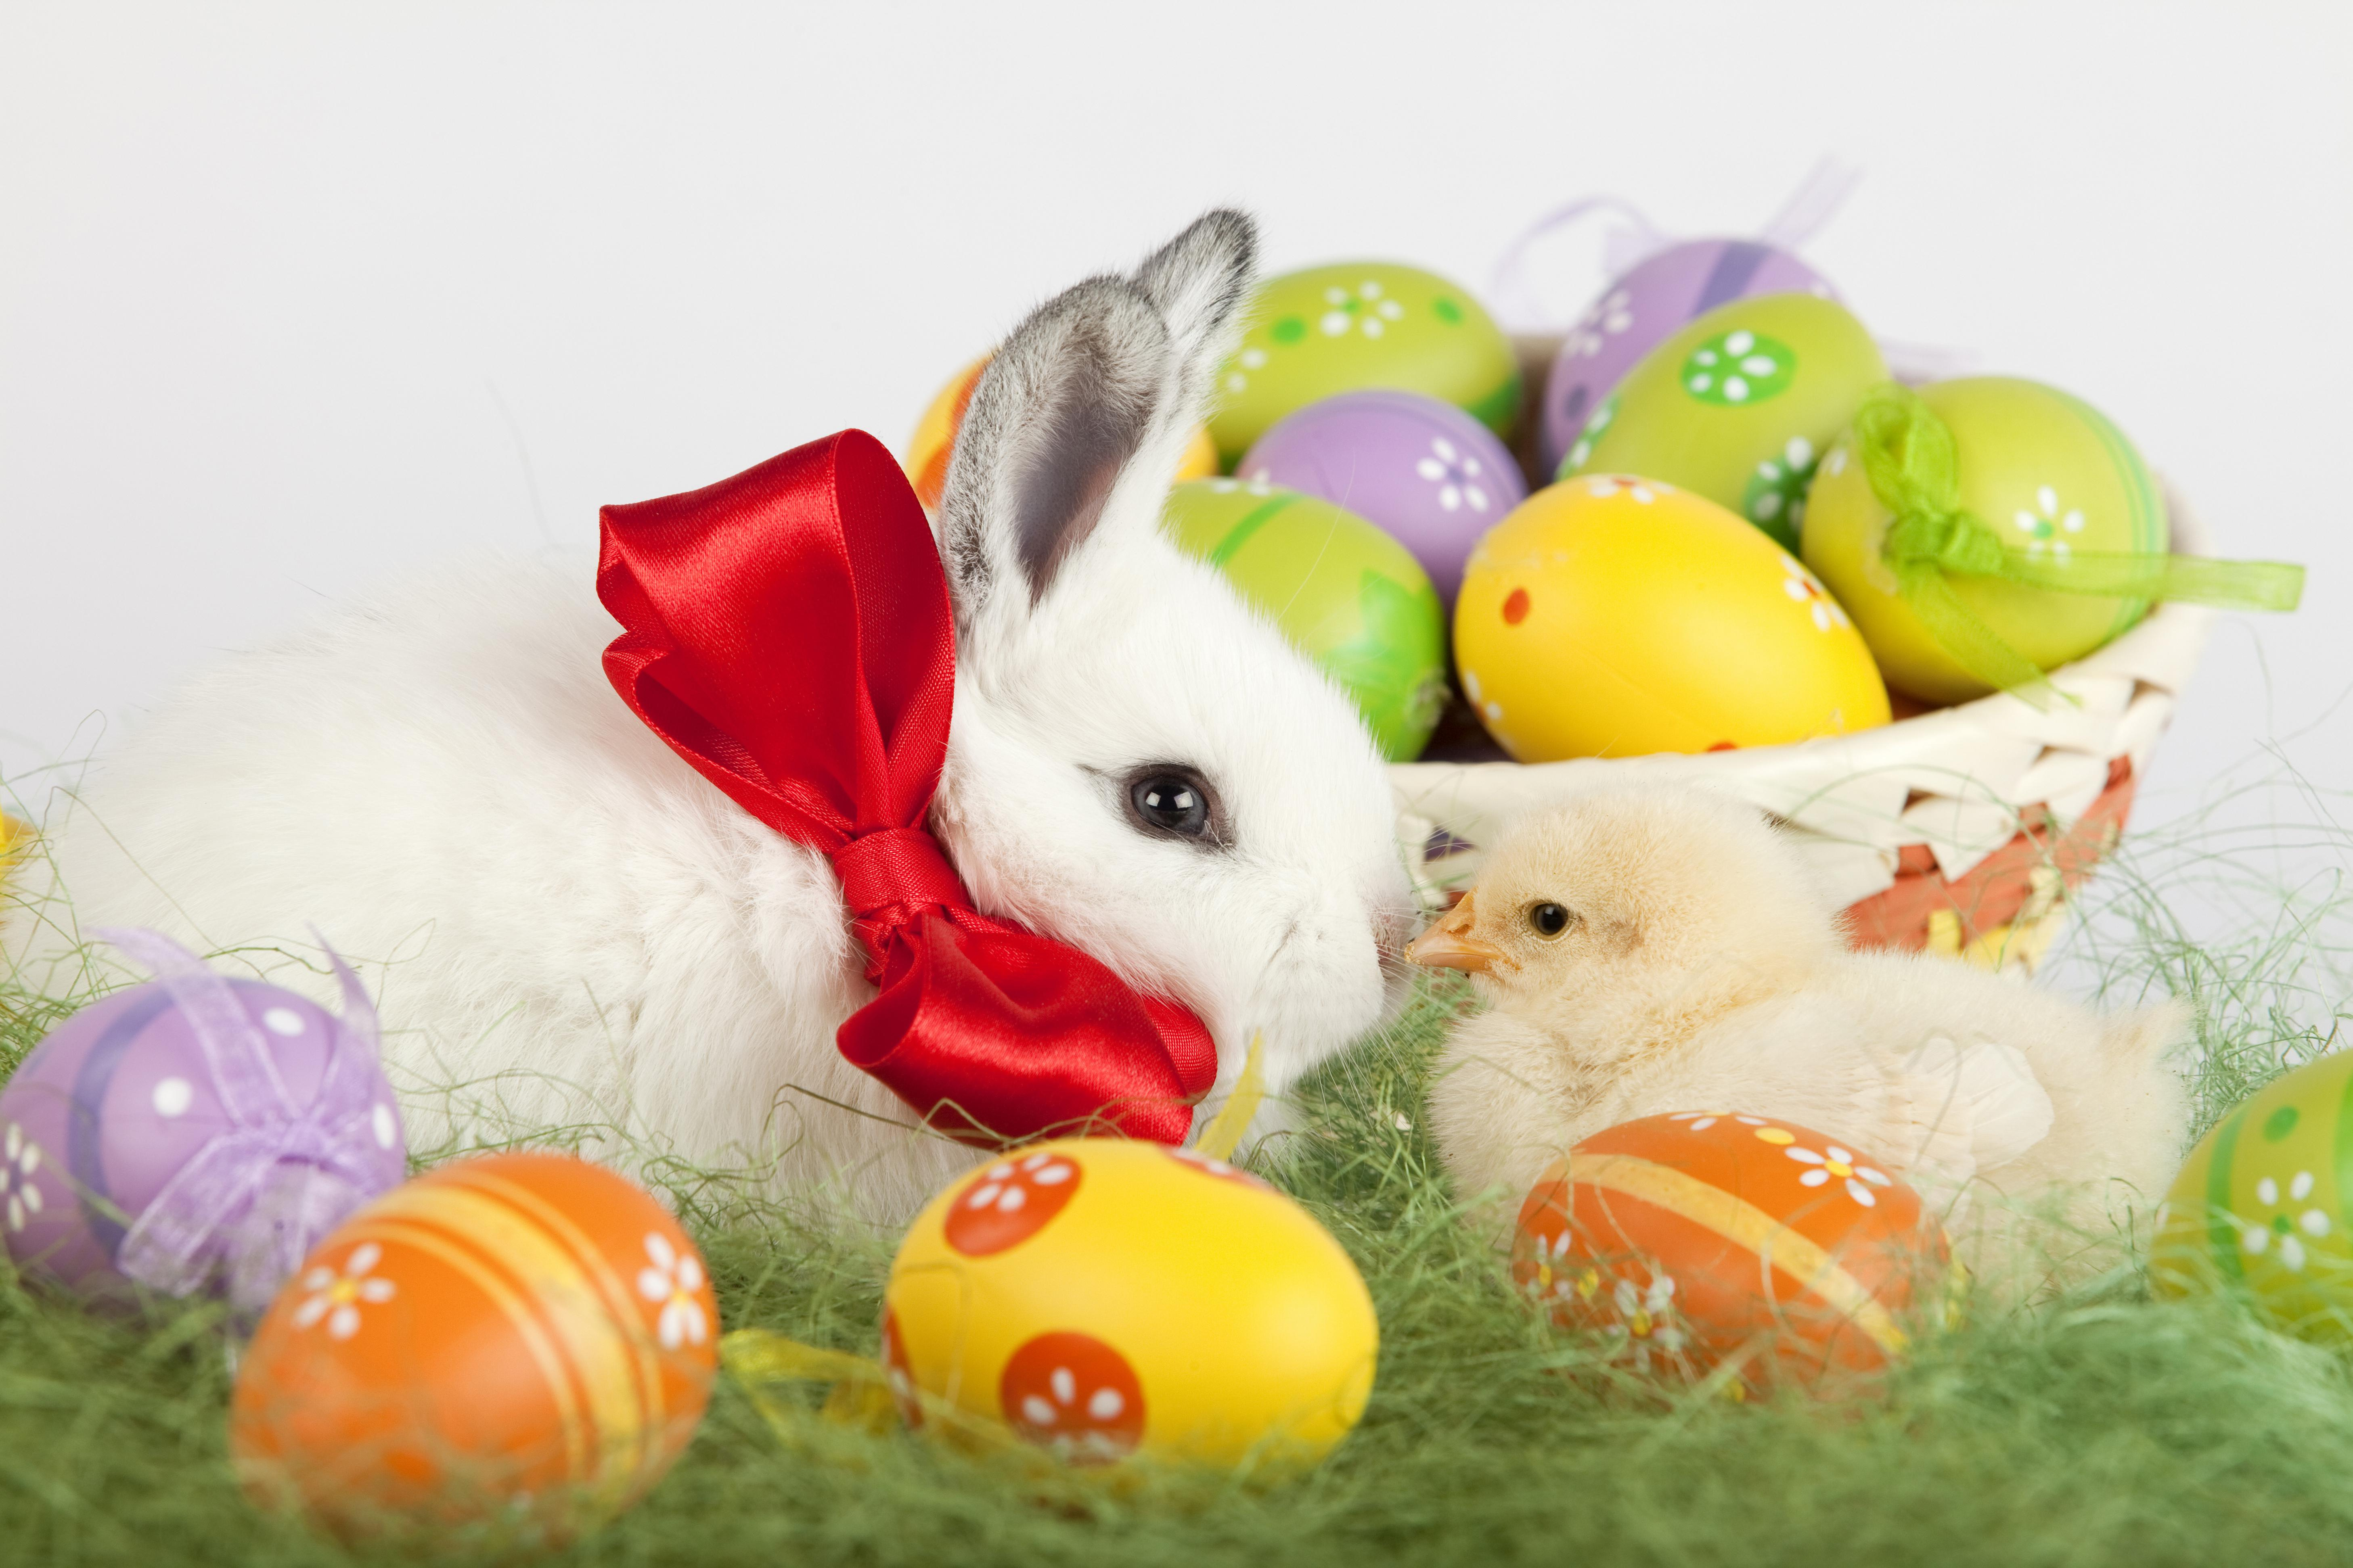 Easter Wallpapers Archives   Page 3 of 10   HD Desktop 5830x3886